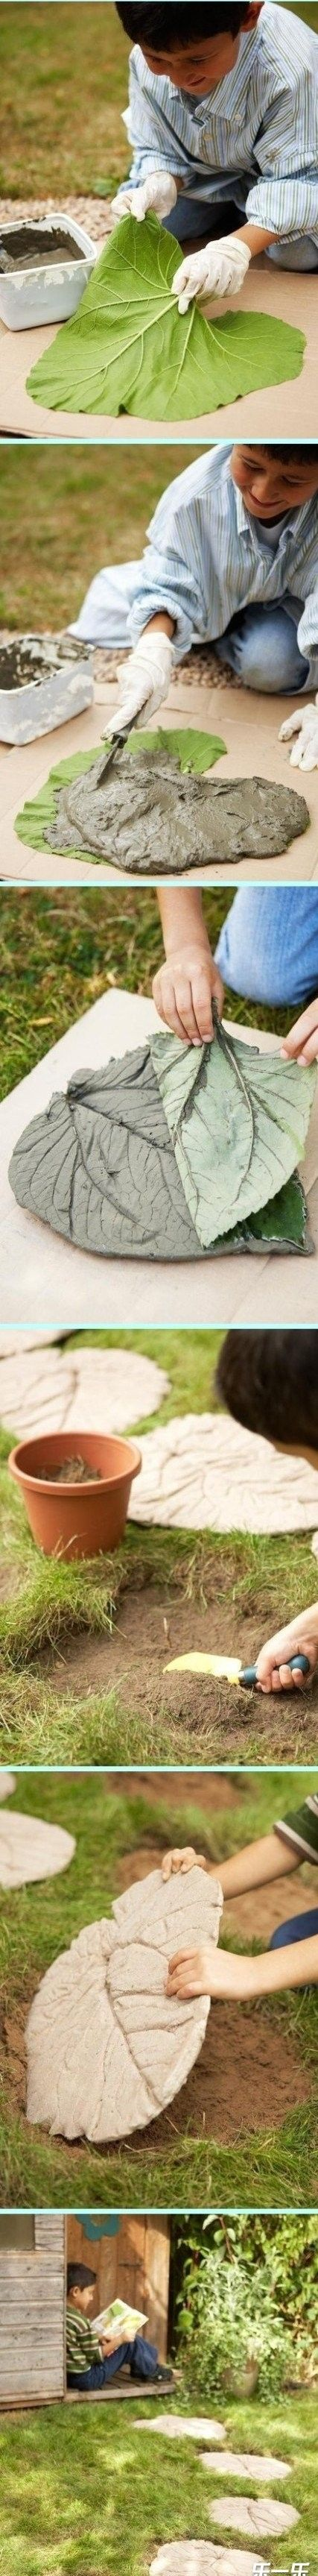 DYI homemade garden decorations projects ideas rhubarb stepping stones